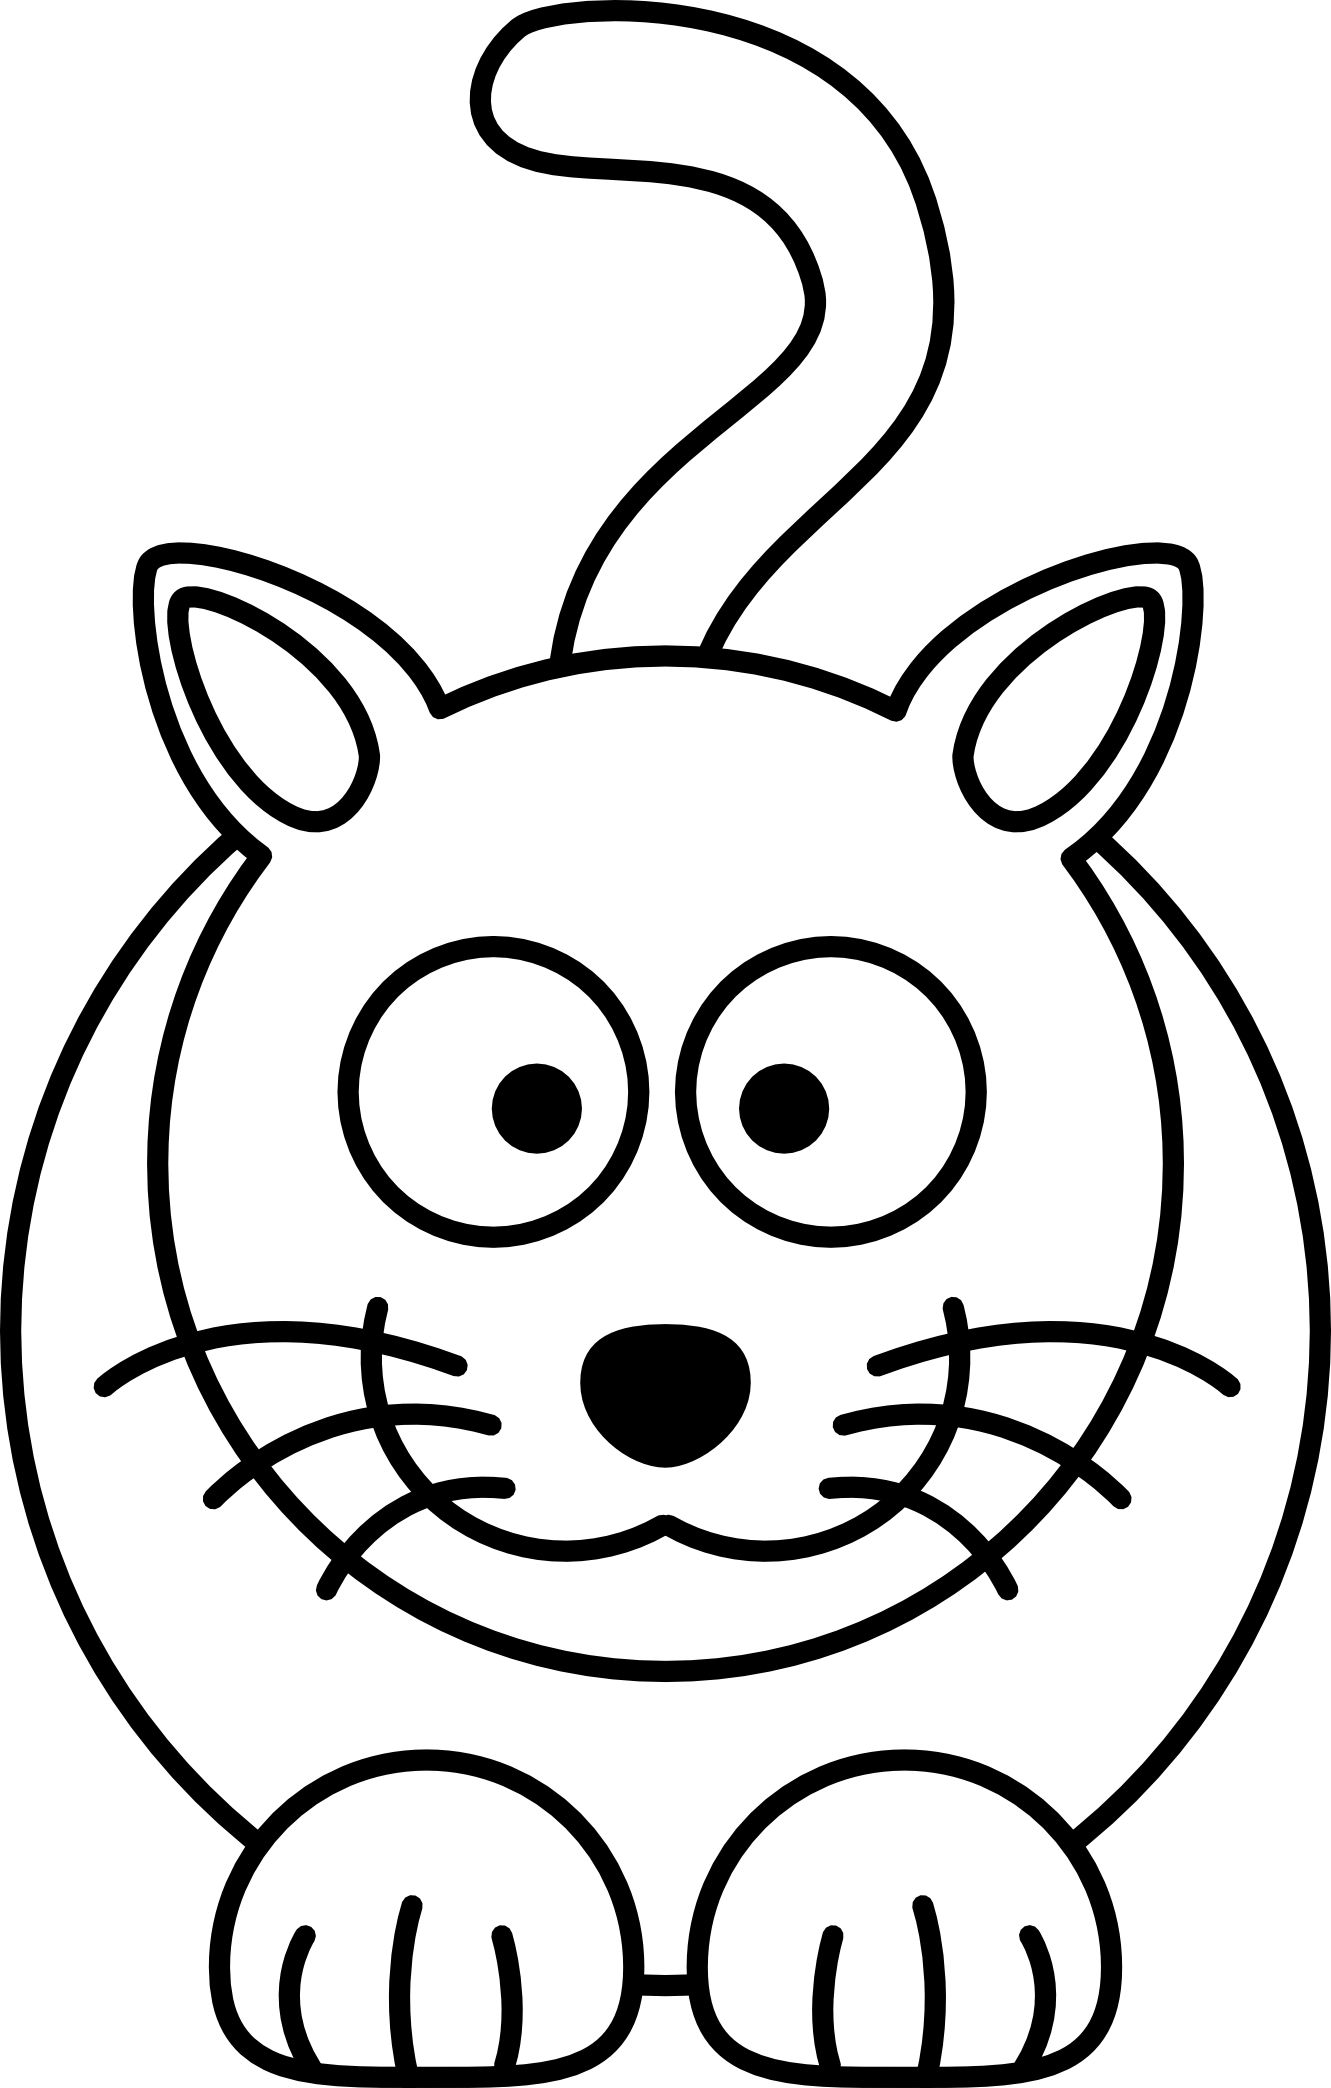 Easy to draw turkey clipart image transparent Animated Cat Drawing at GetDrawings.com | Free for personal use ... image transparent